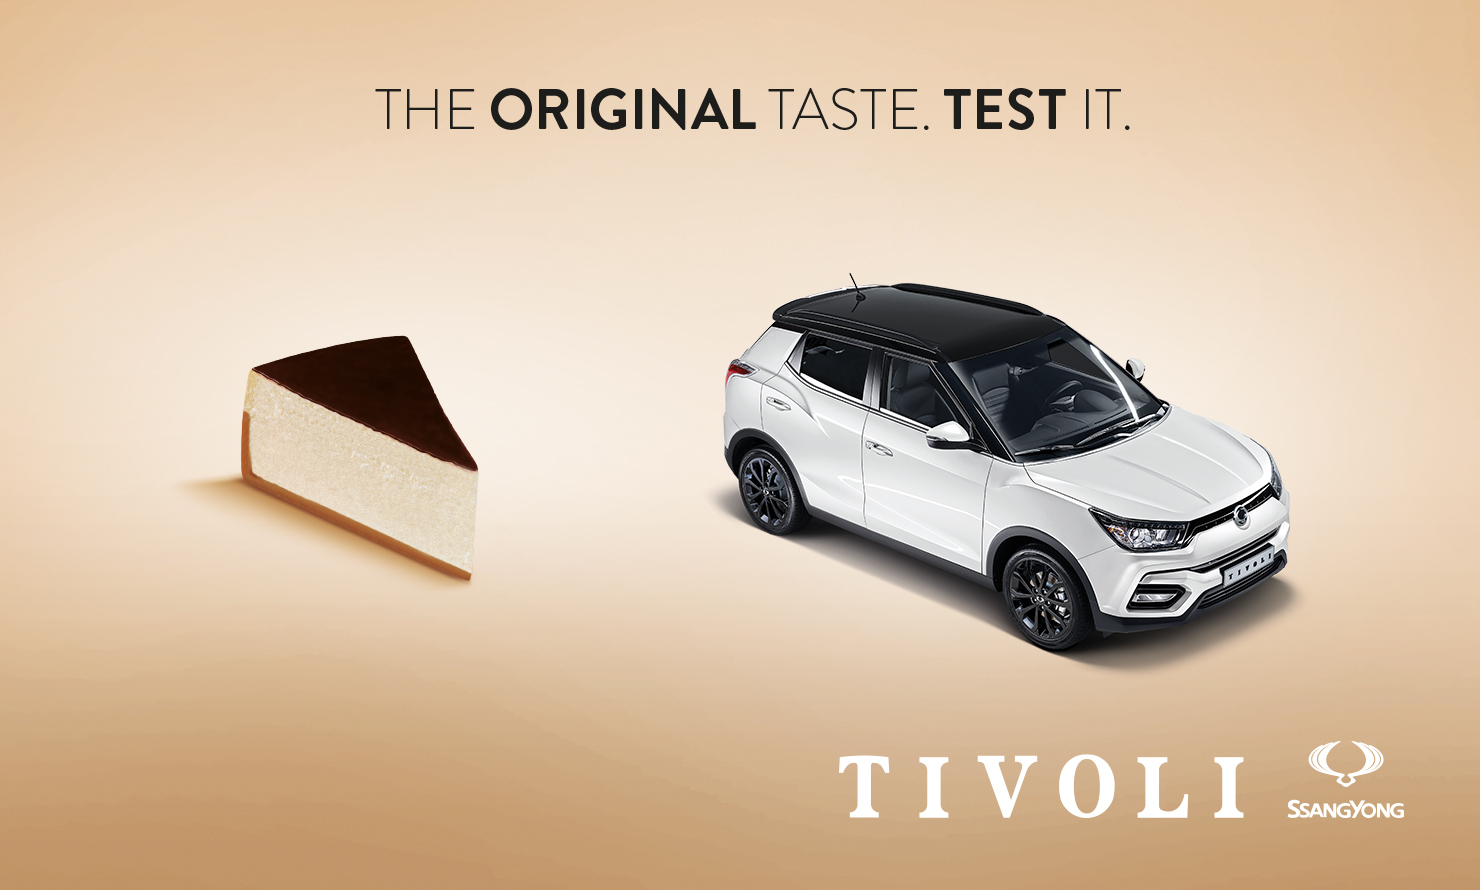 https://www.kubelibre.com/uploads/Slider-work-tutti-clienti/ssangyong-tivoli-the-original-taste-test-it-1.jpg